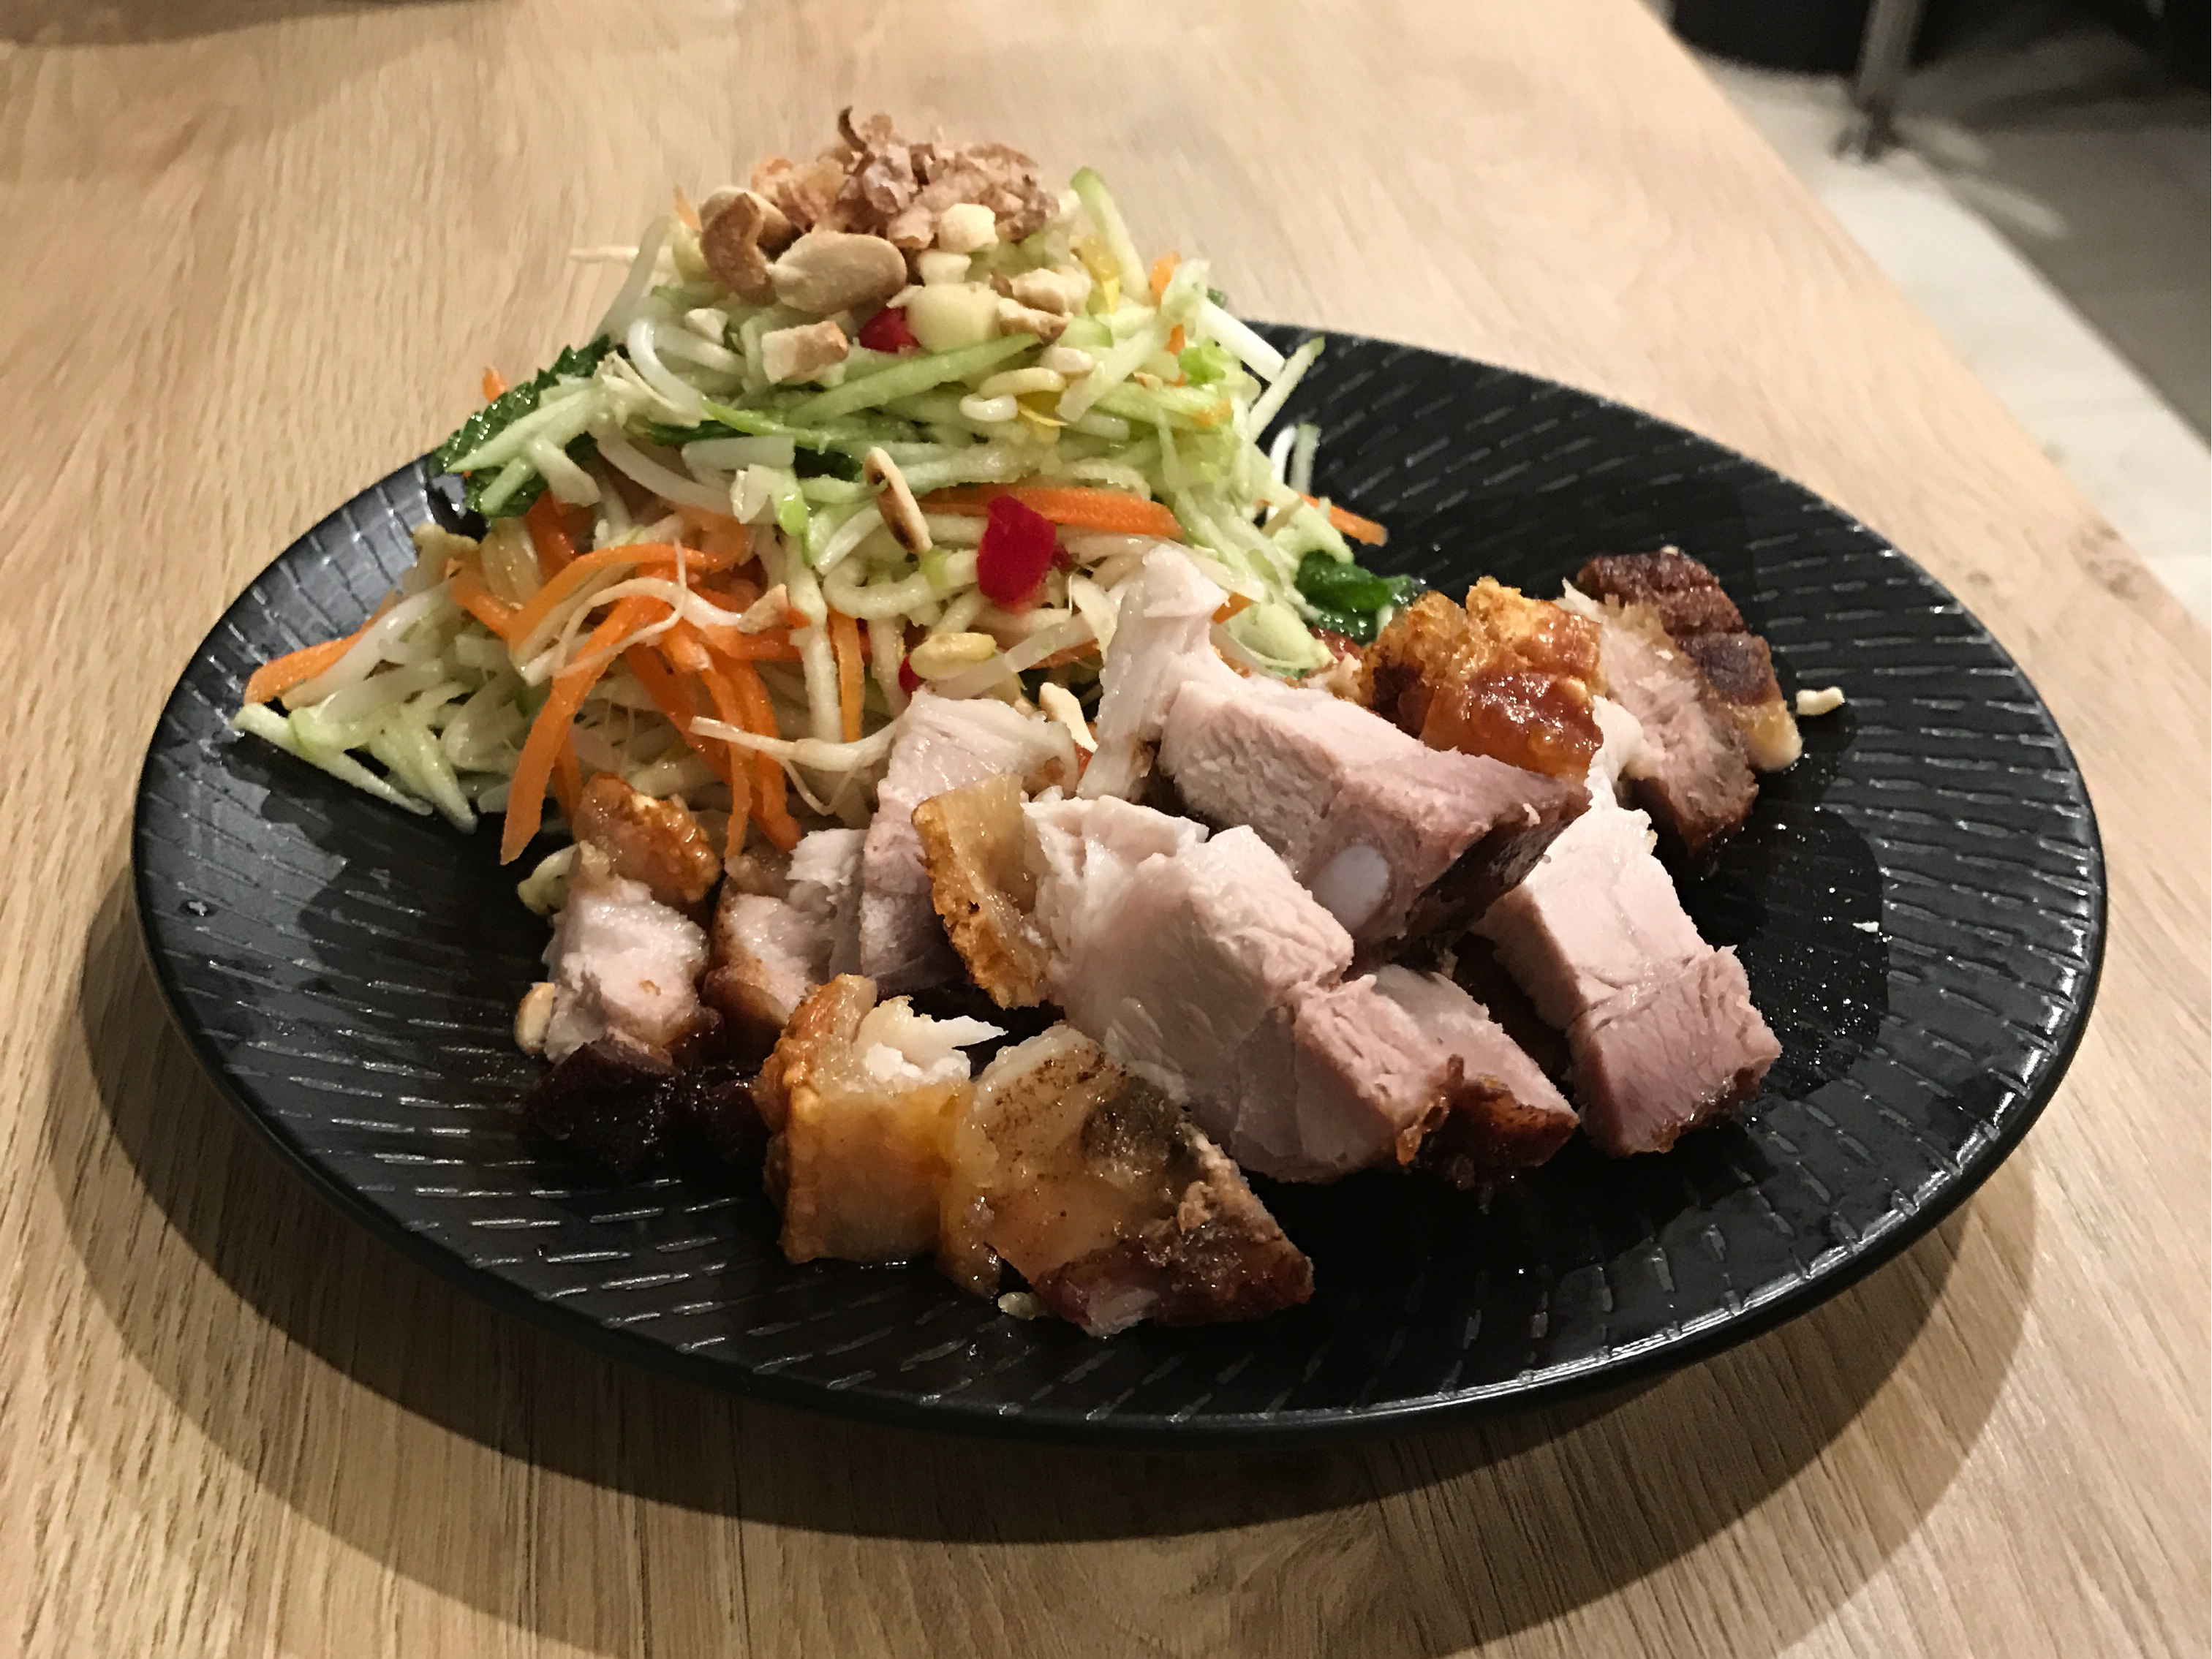 Crispy Pork Belly with Green Pawpaw Salad